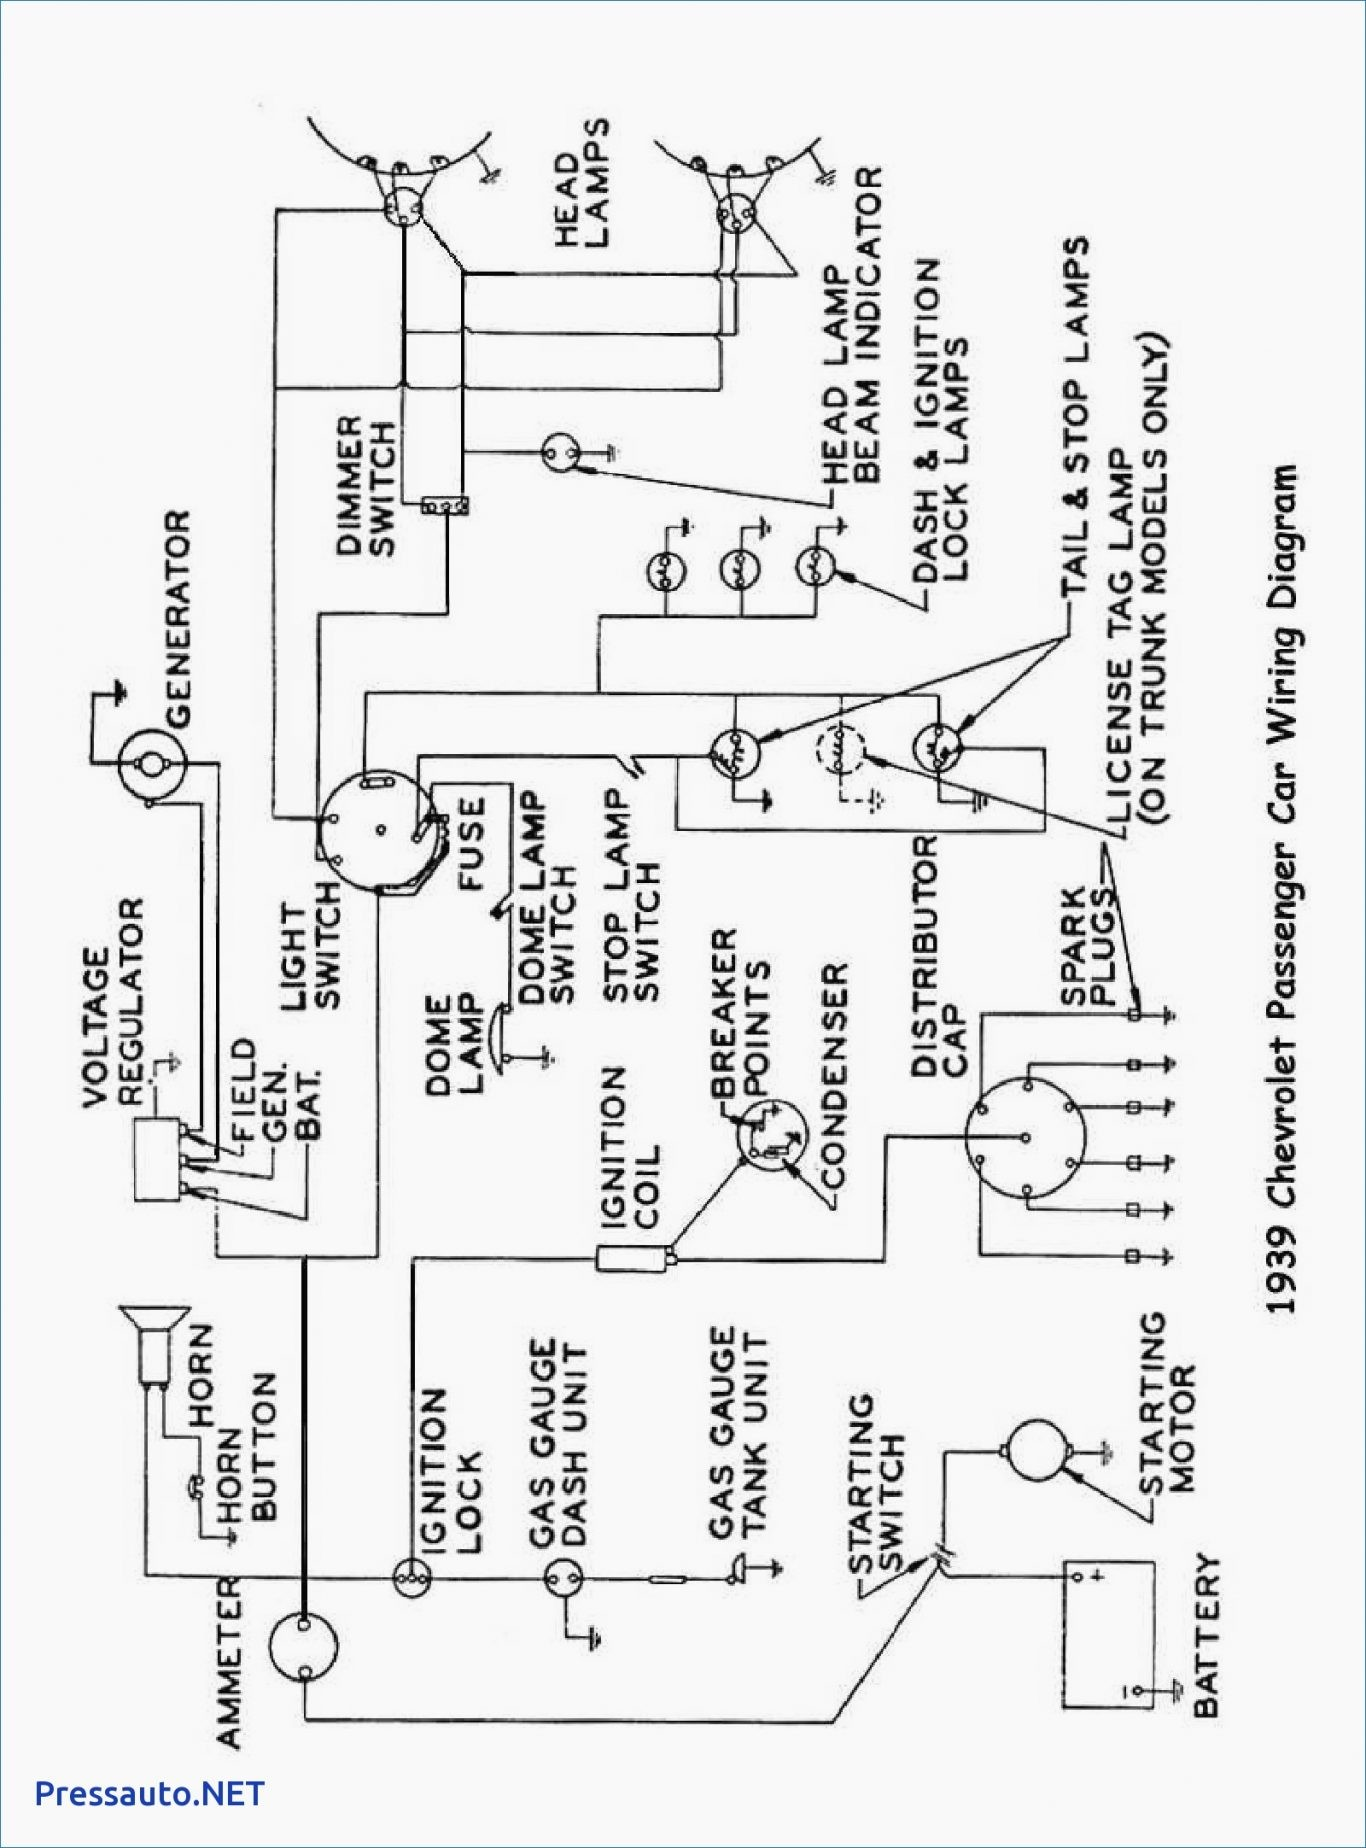 hight resolution of 1366x1848 wiring diagram 1 gang switch best of way dimmer wiring diagram